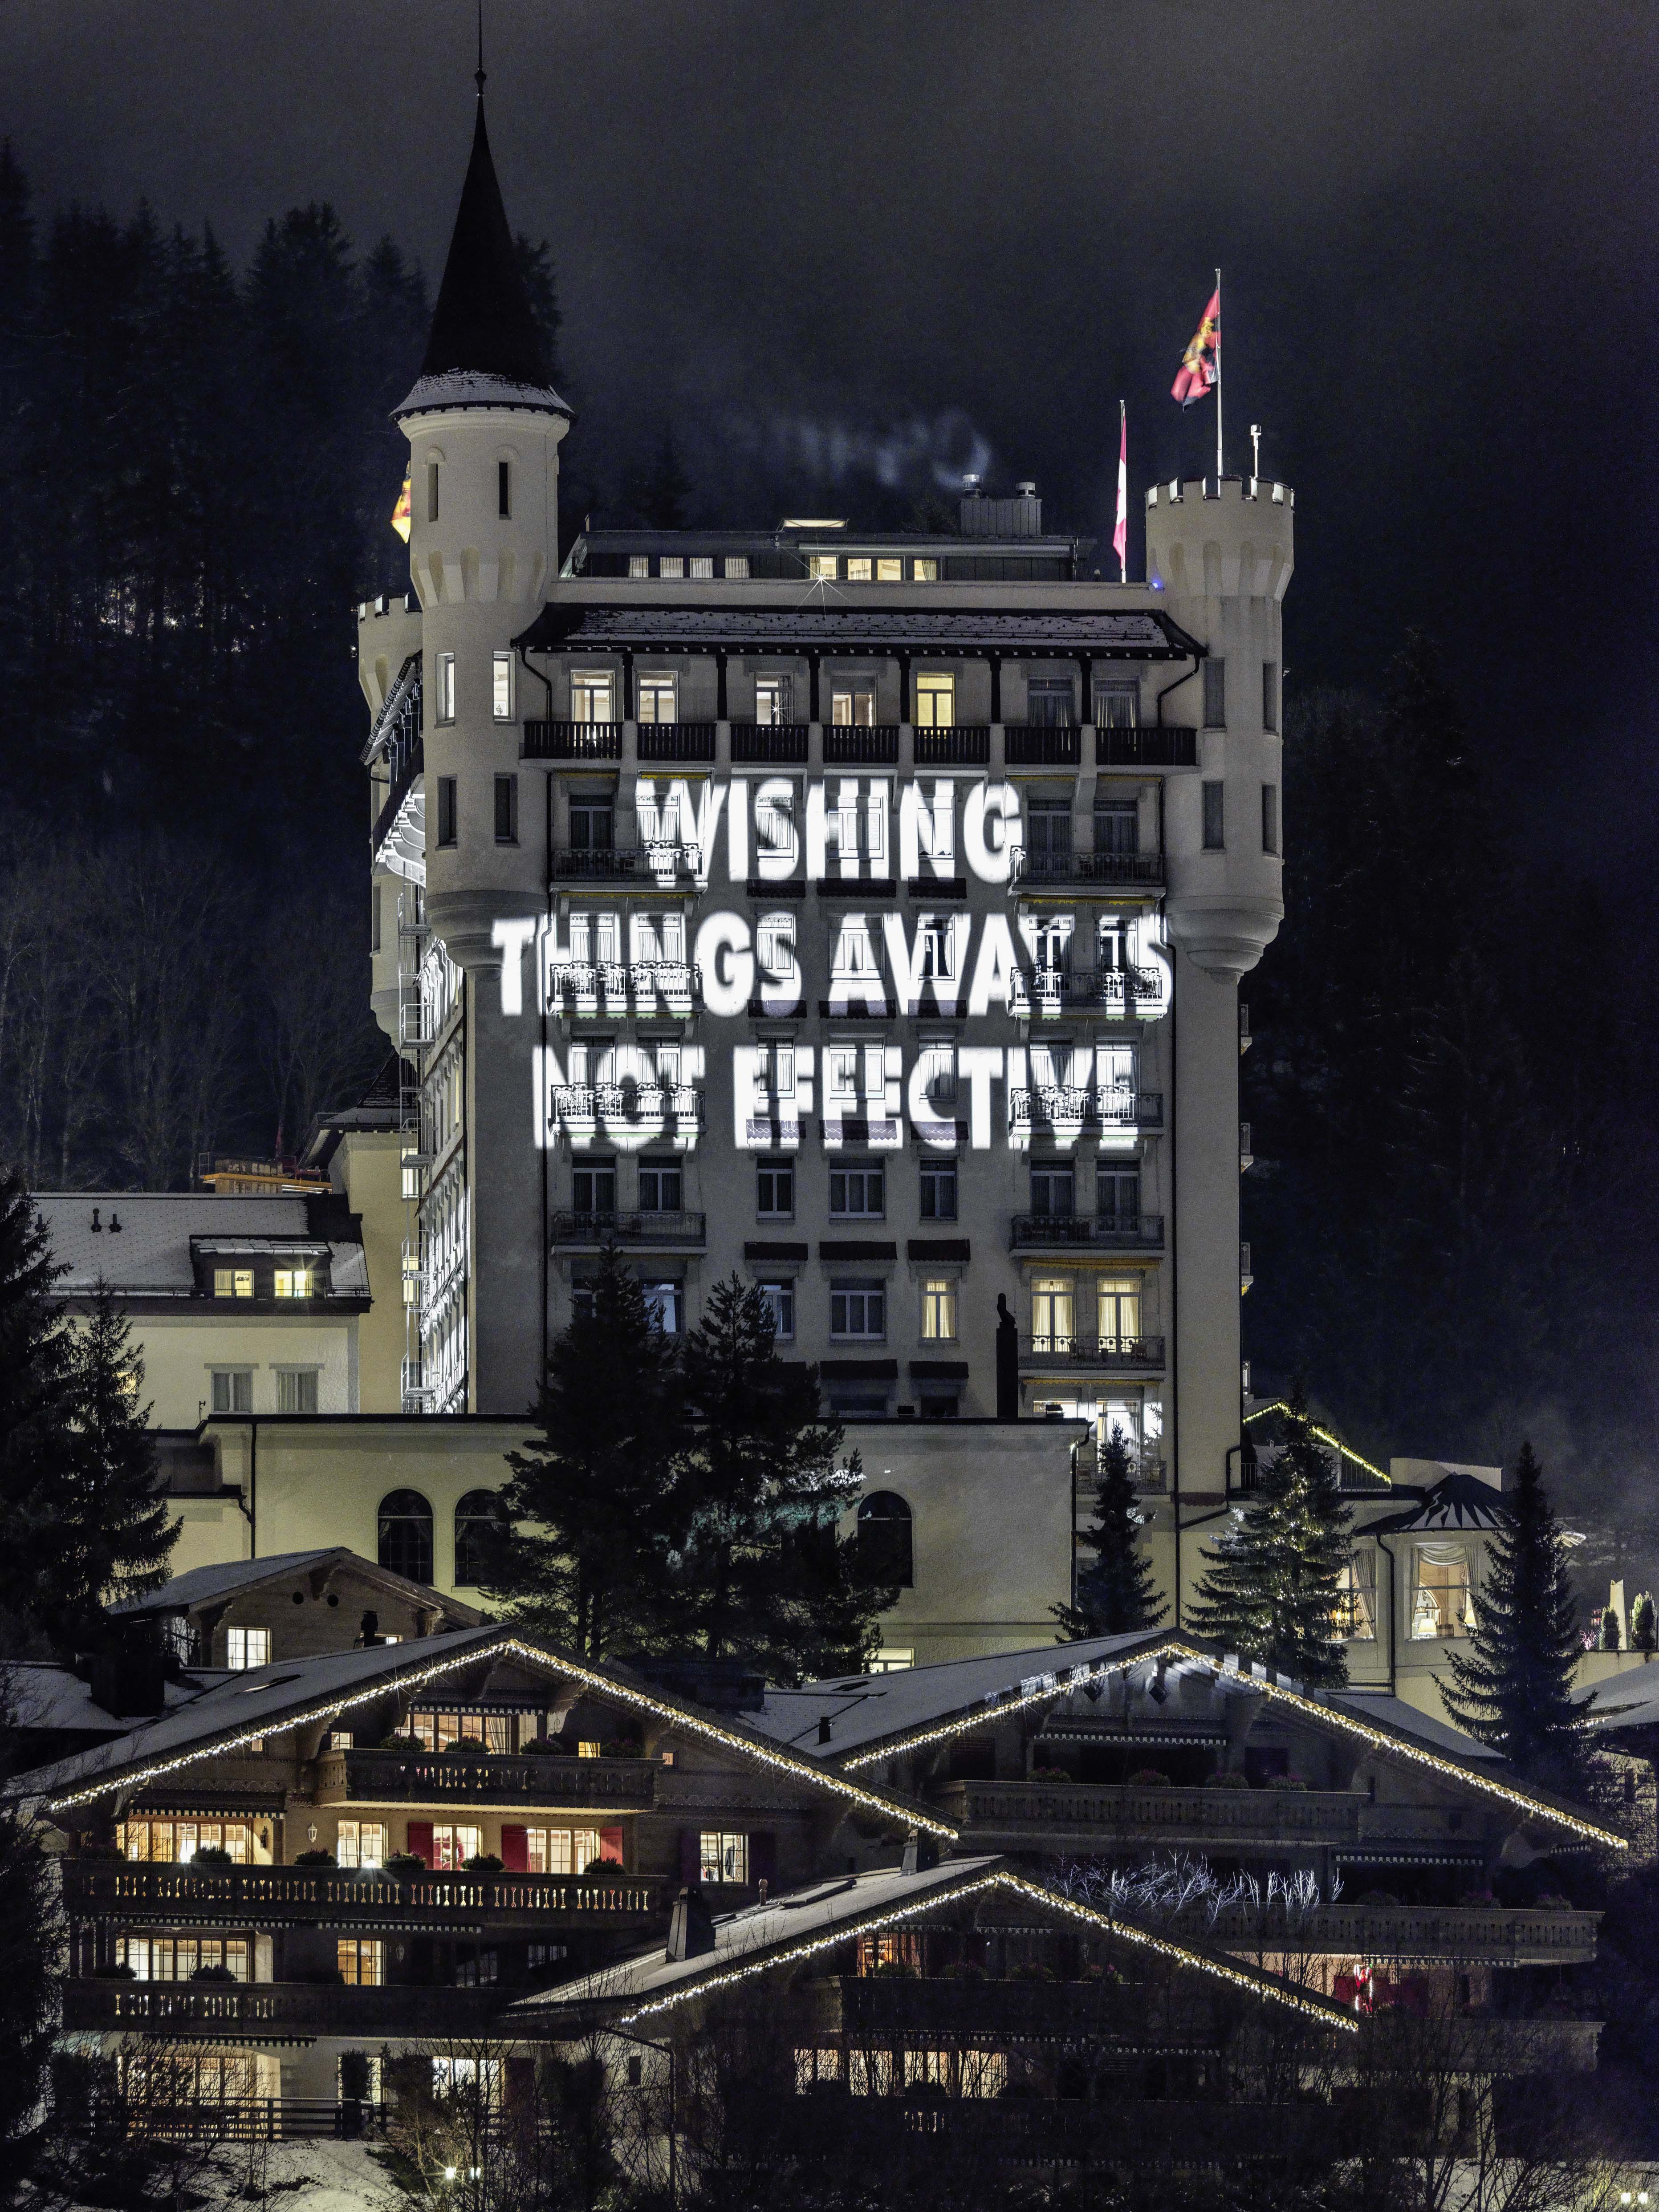 """Jenny Holzer, """"A LITTLE KNOWLEDGE CAN GO A LONG WAY"""" (2019). Light projections on the Gstaad Palace © Jenny Holzer. ARS, NY and DACS, London 2019. Courtesy the artist and Hauser & Wirth"""